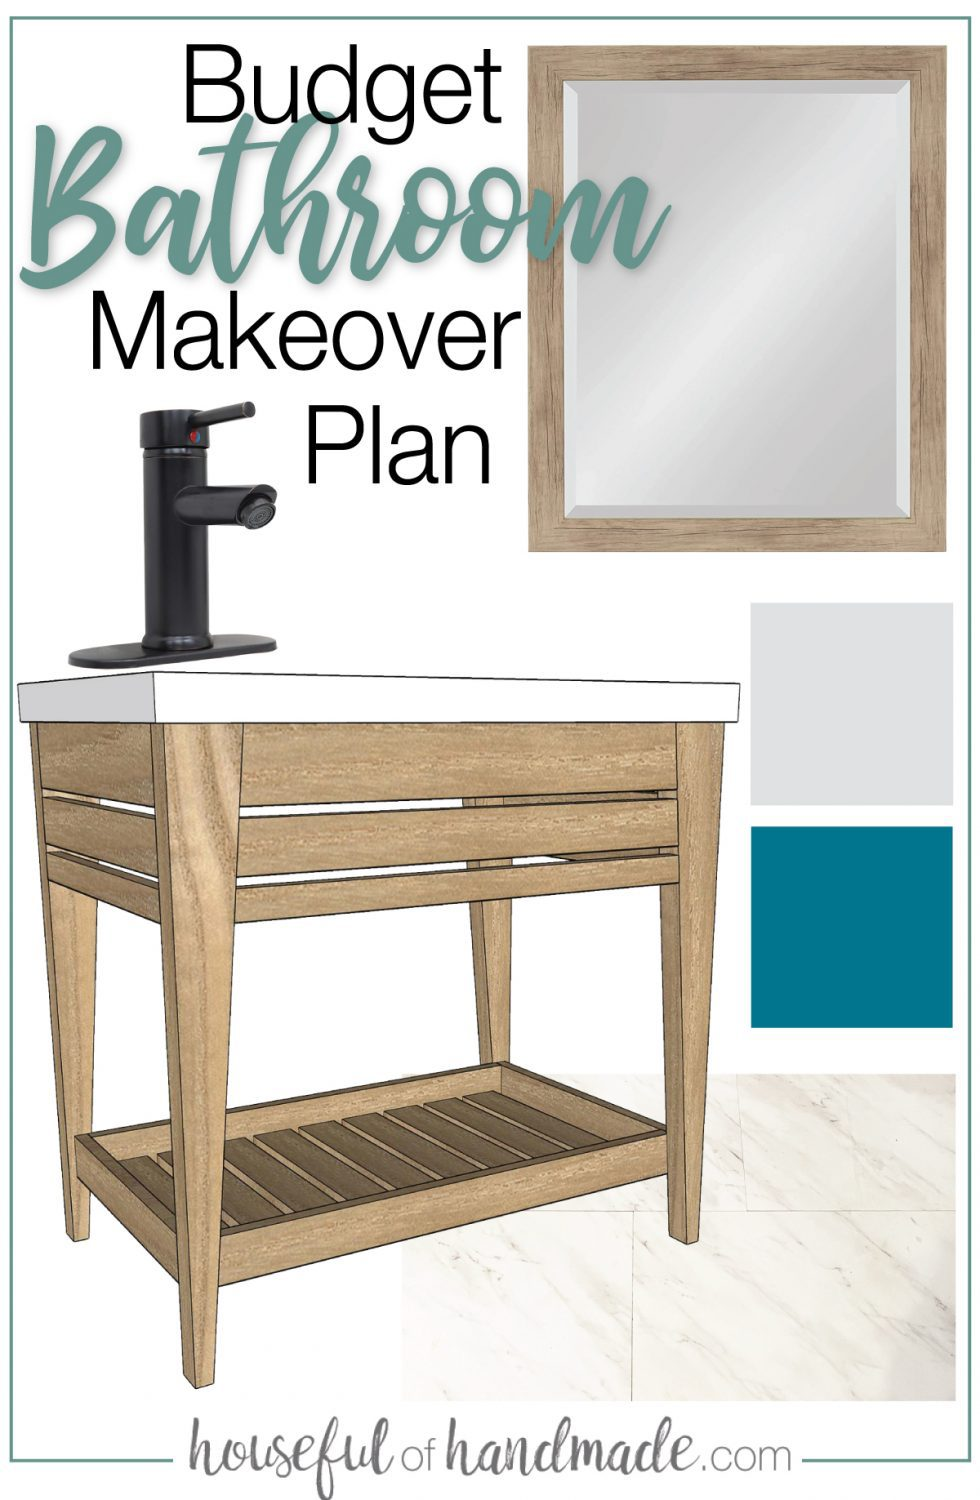 Mood board for the $100 bathroom remodel with wood framed mirror, open bathroom vanity, vinyl floor, color swatches and black faucet with text: Budget Bathroom Makeover Plan.